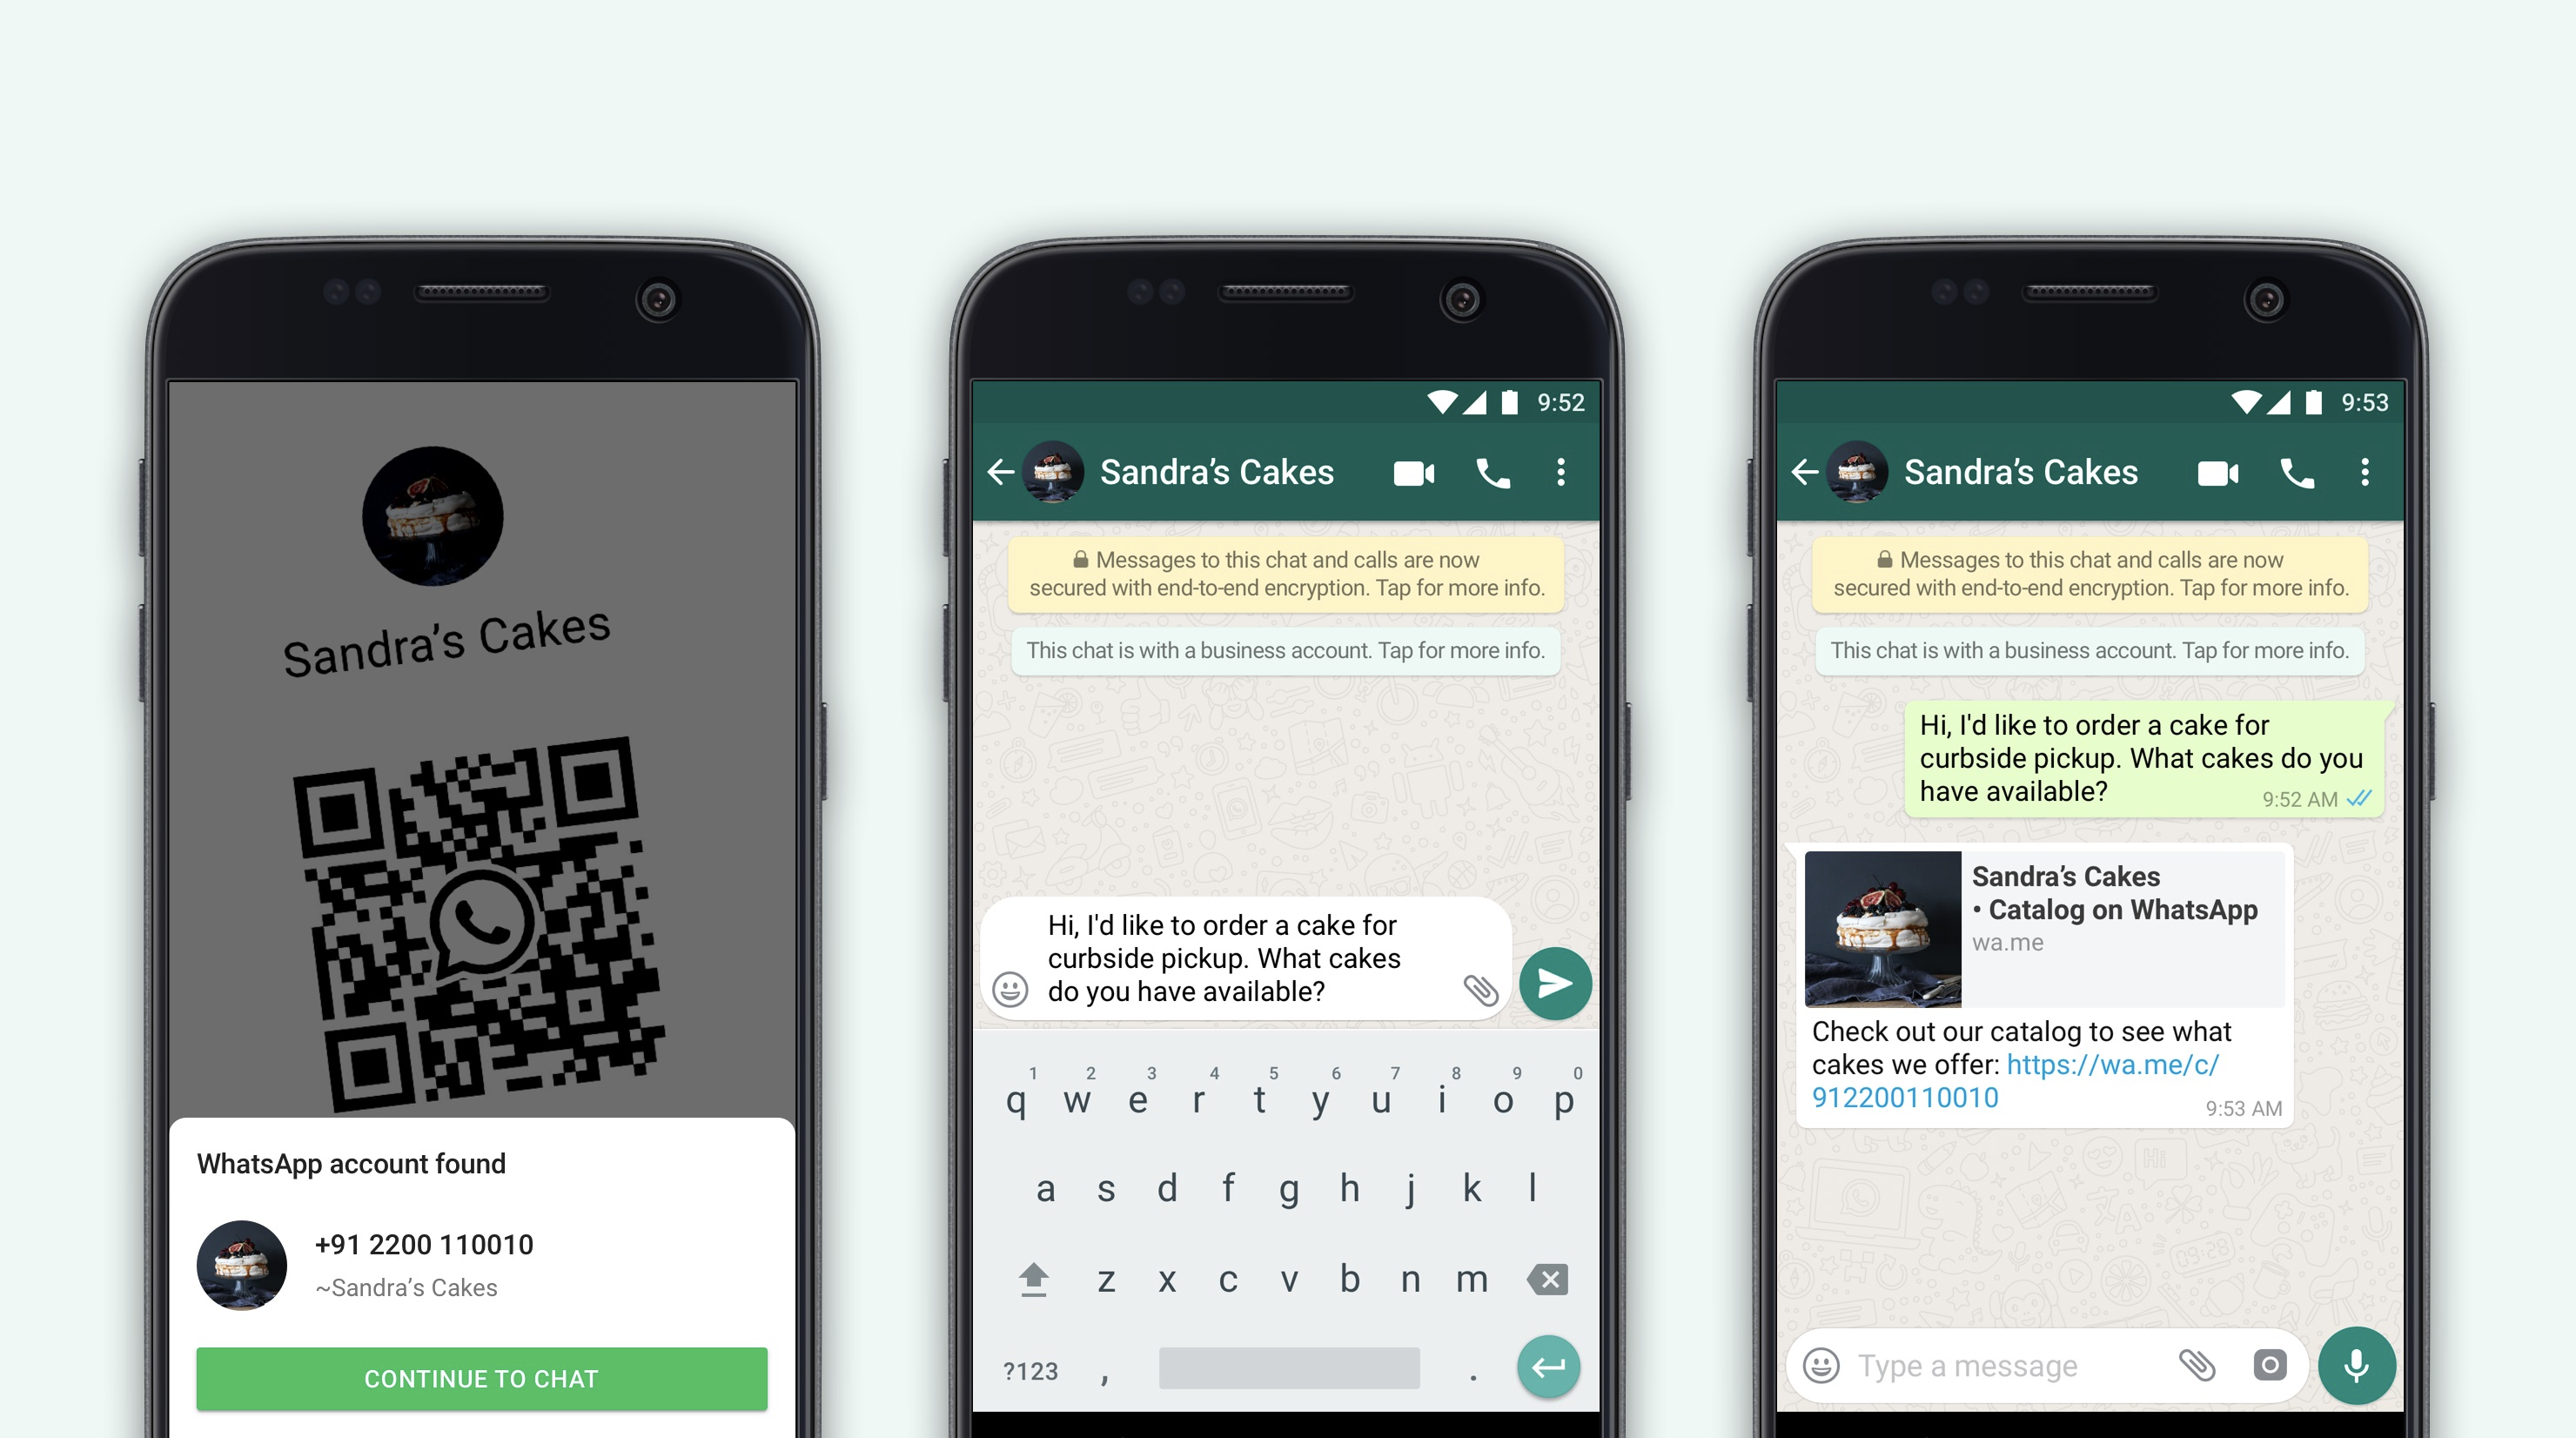 WhatsApp now lets businesses connect with customers using QR codes.